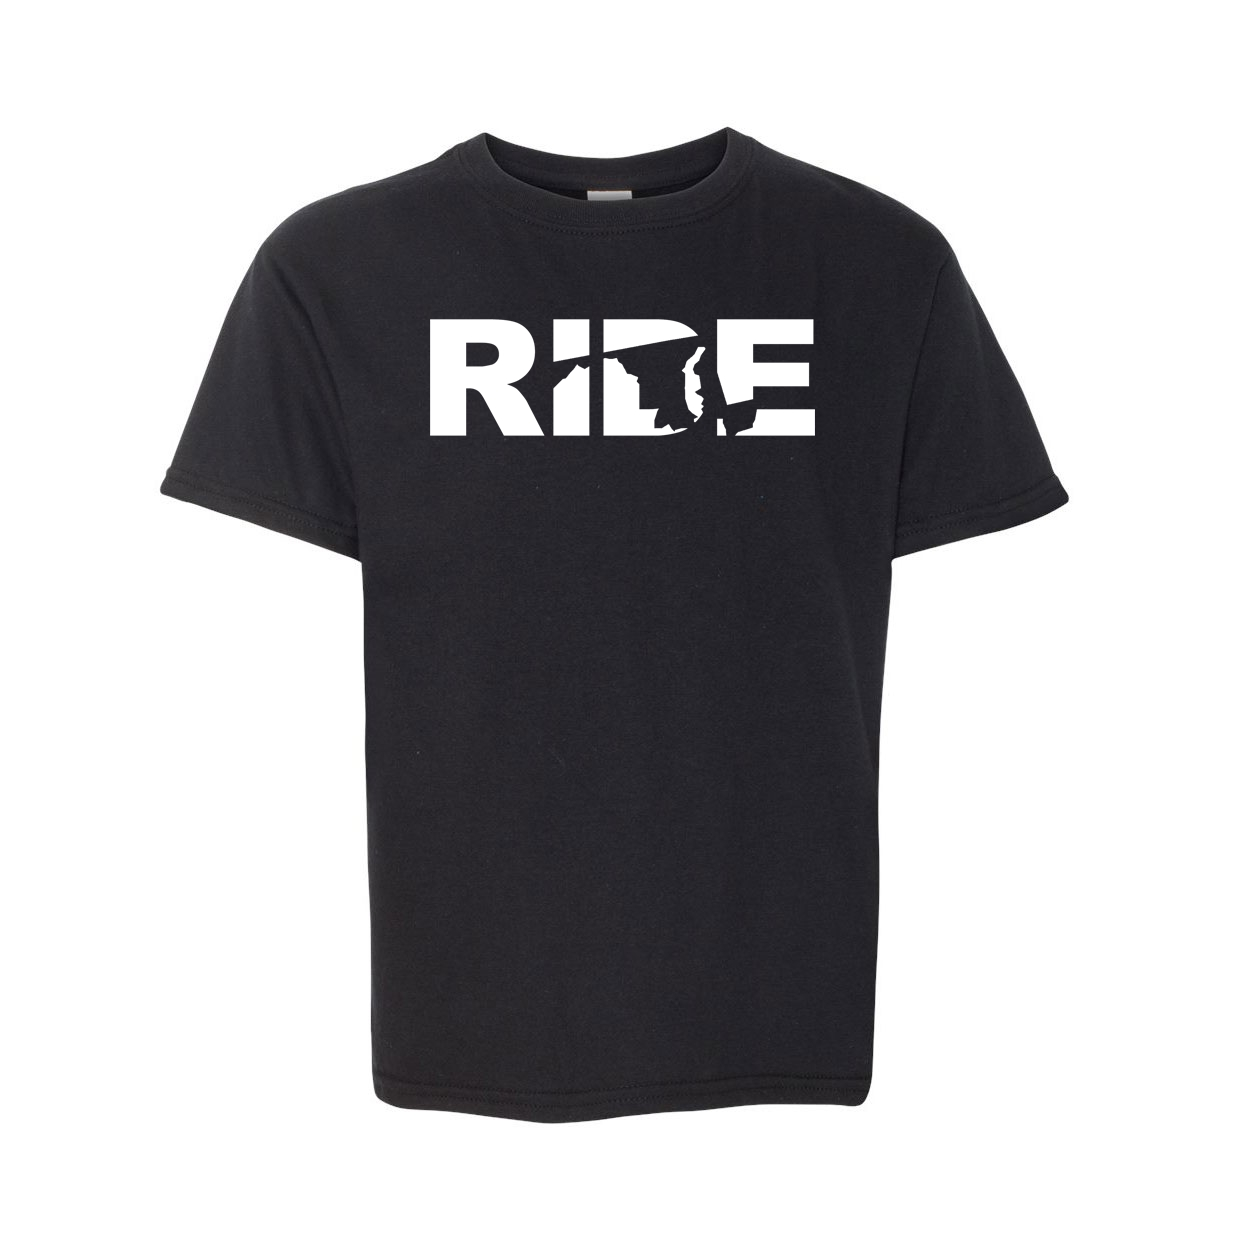 Ride Maryland Classic Youth T-Shirt Black (White Logo)